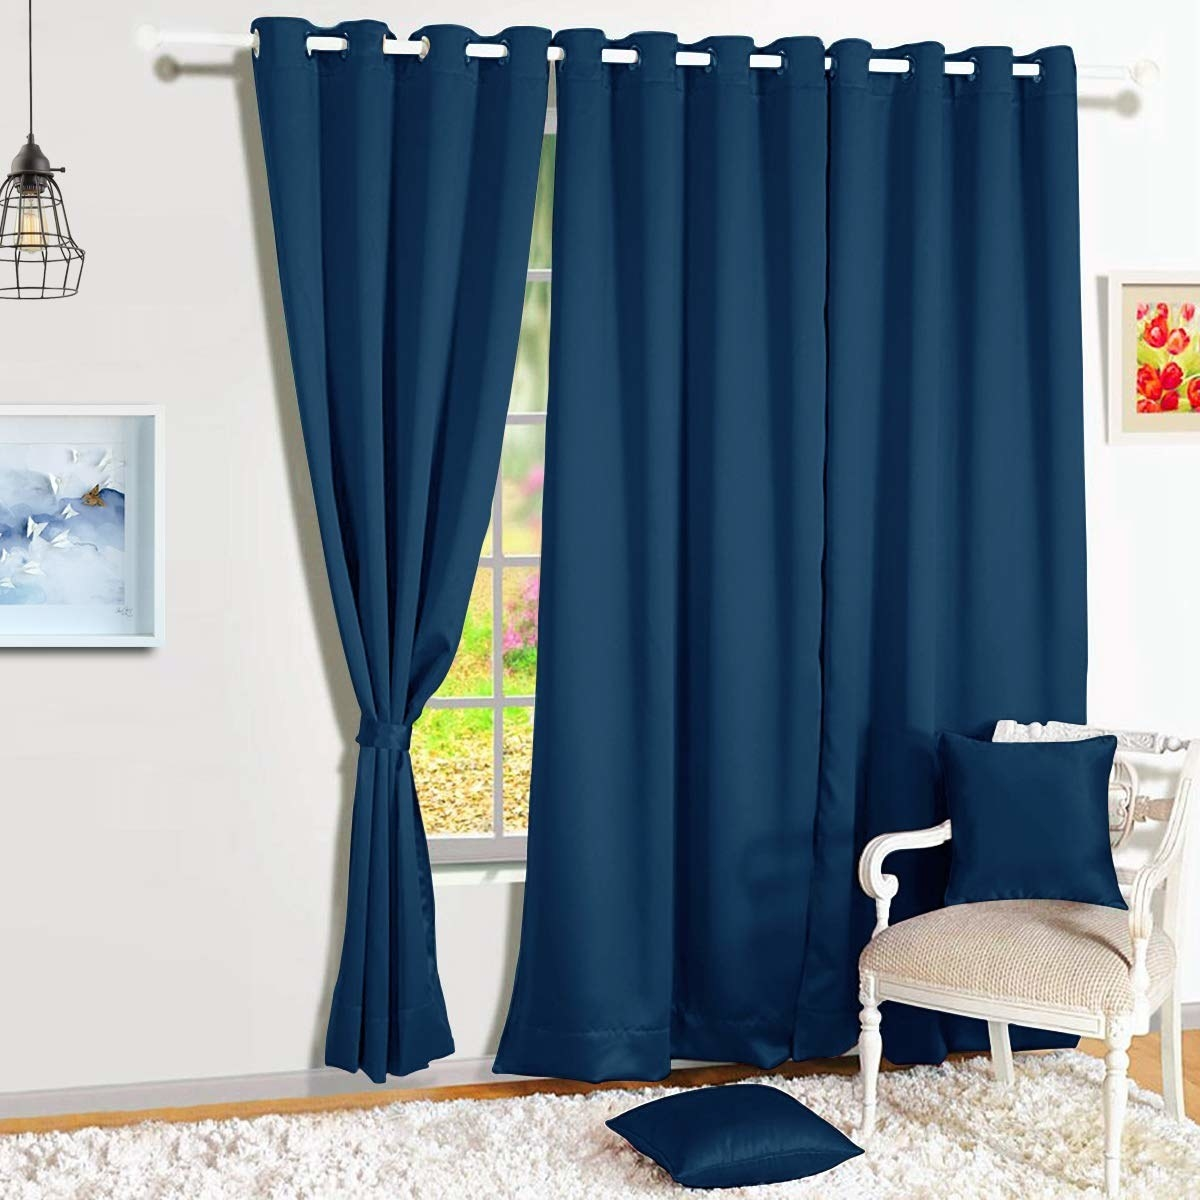 Blue curtains on a window